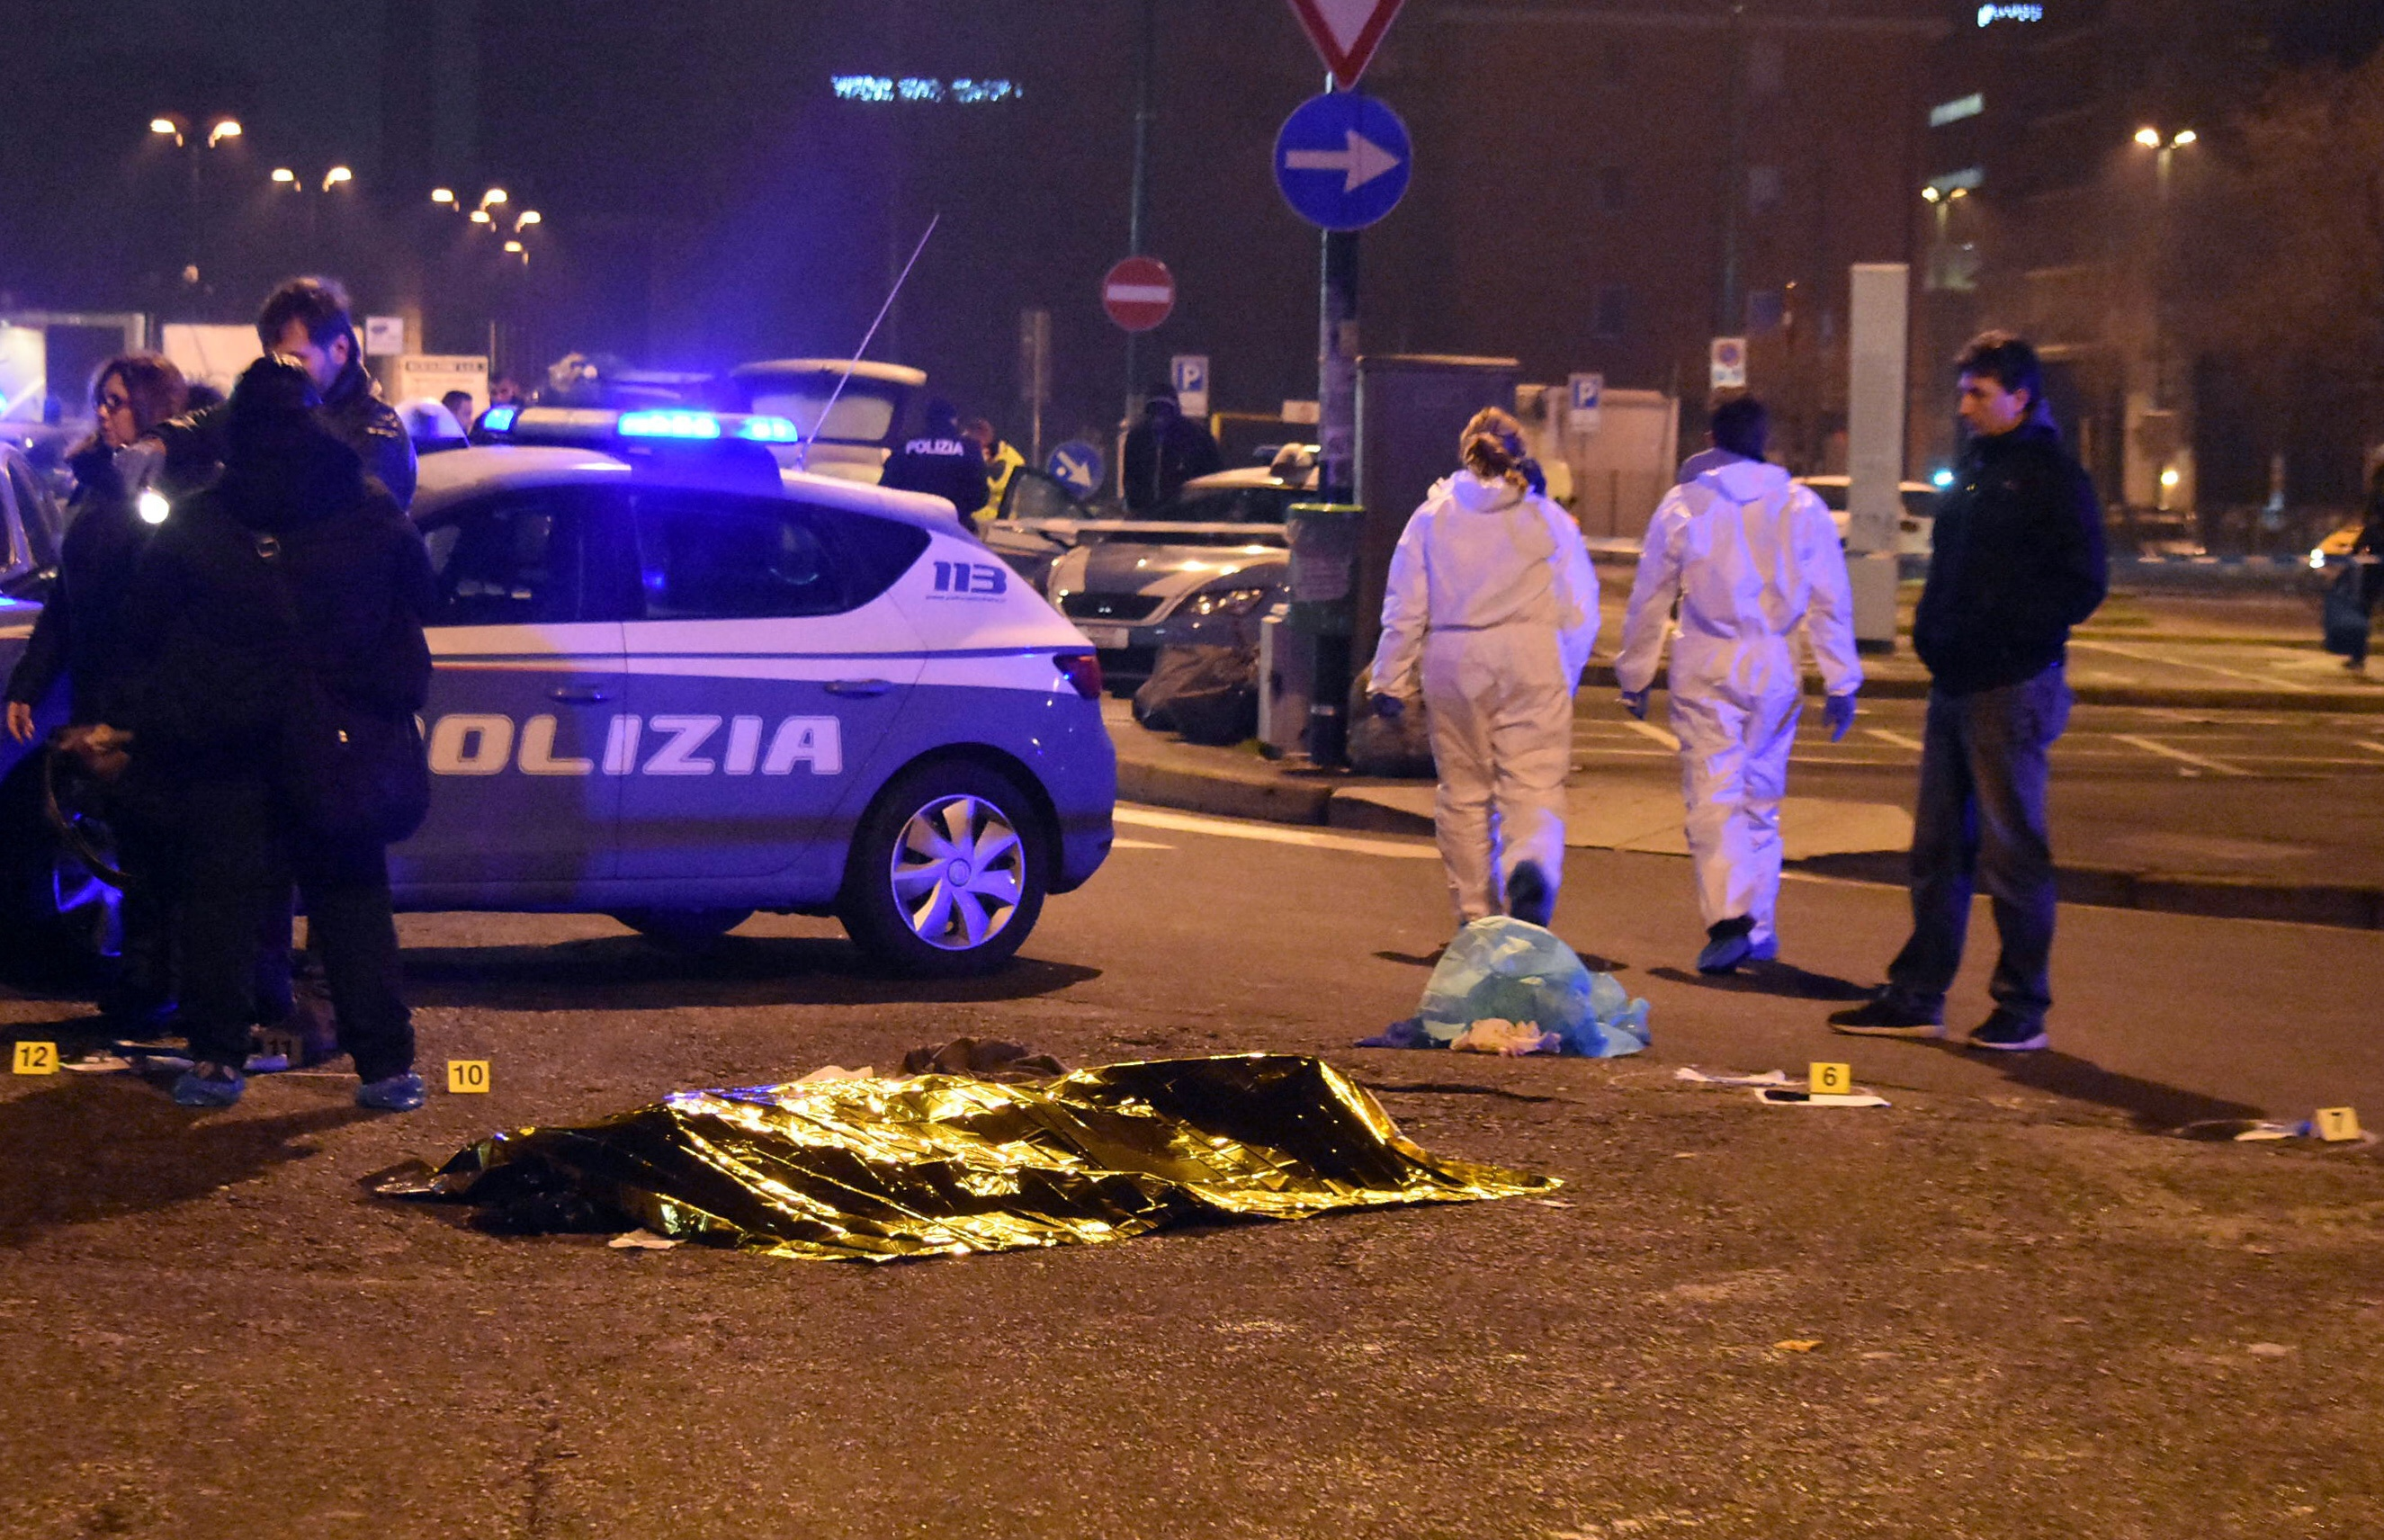 A body is covered with a thermic blanket after a shootout between police and a man near a train station in Milan's Sesto San Giovanni neighborhood, Italy, early Friday, Dec. 23, 2016